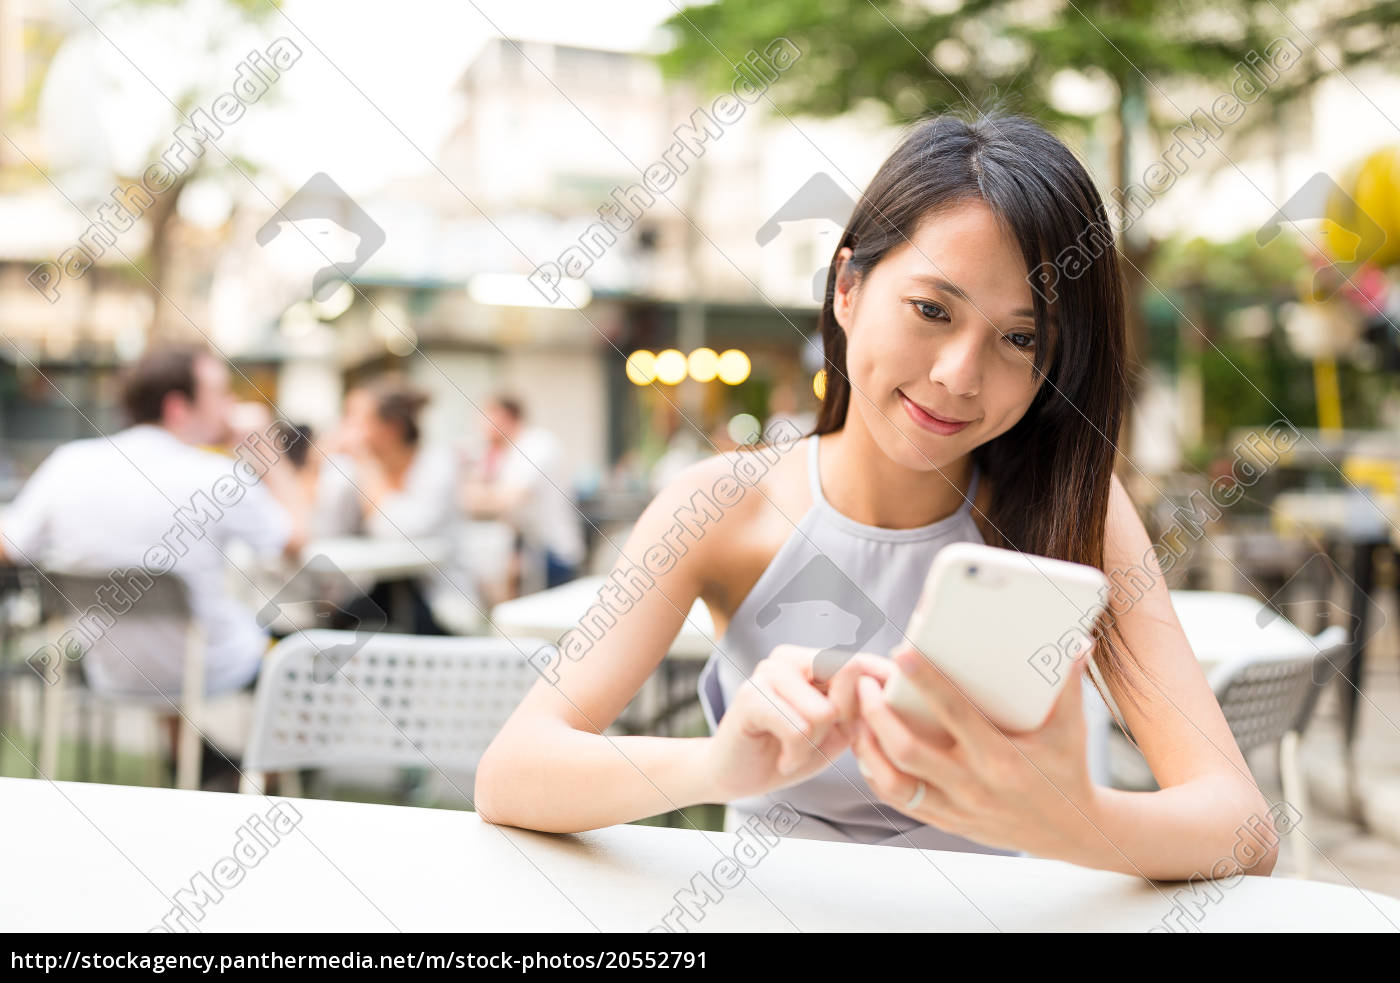 woman, using, cellphone, at, outdoor, restaurant - 20552791